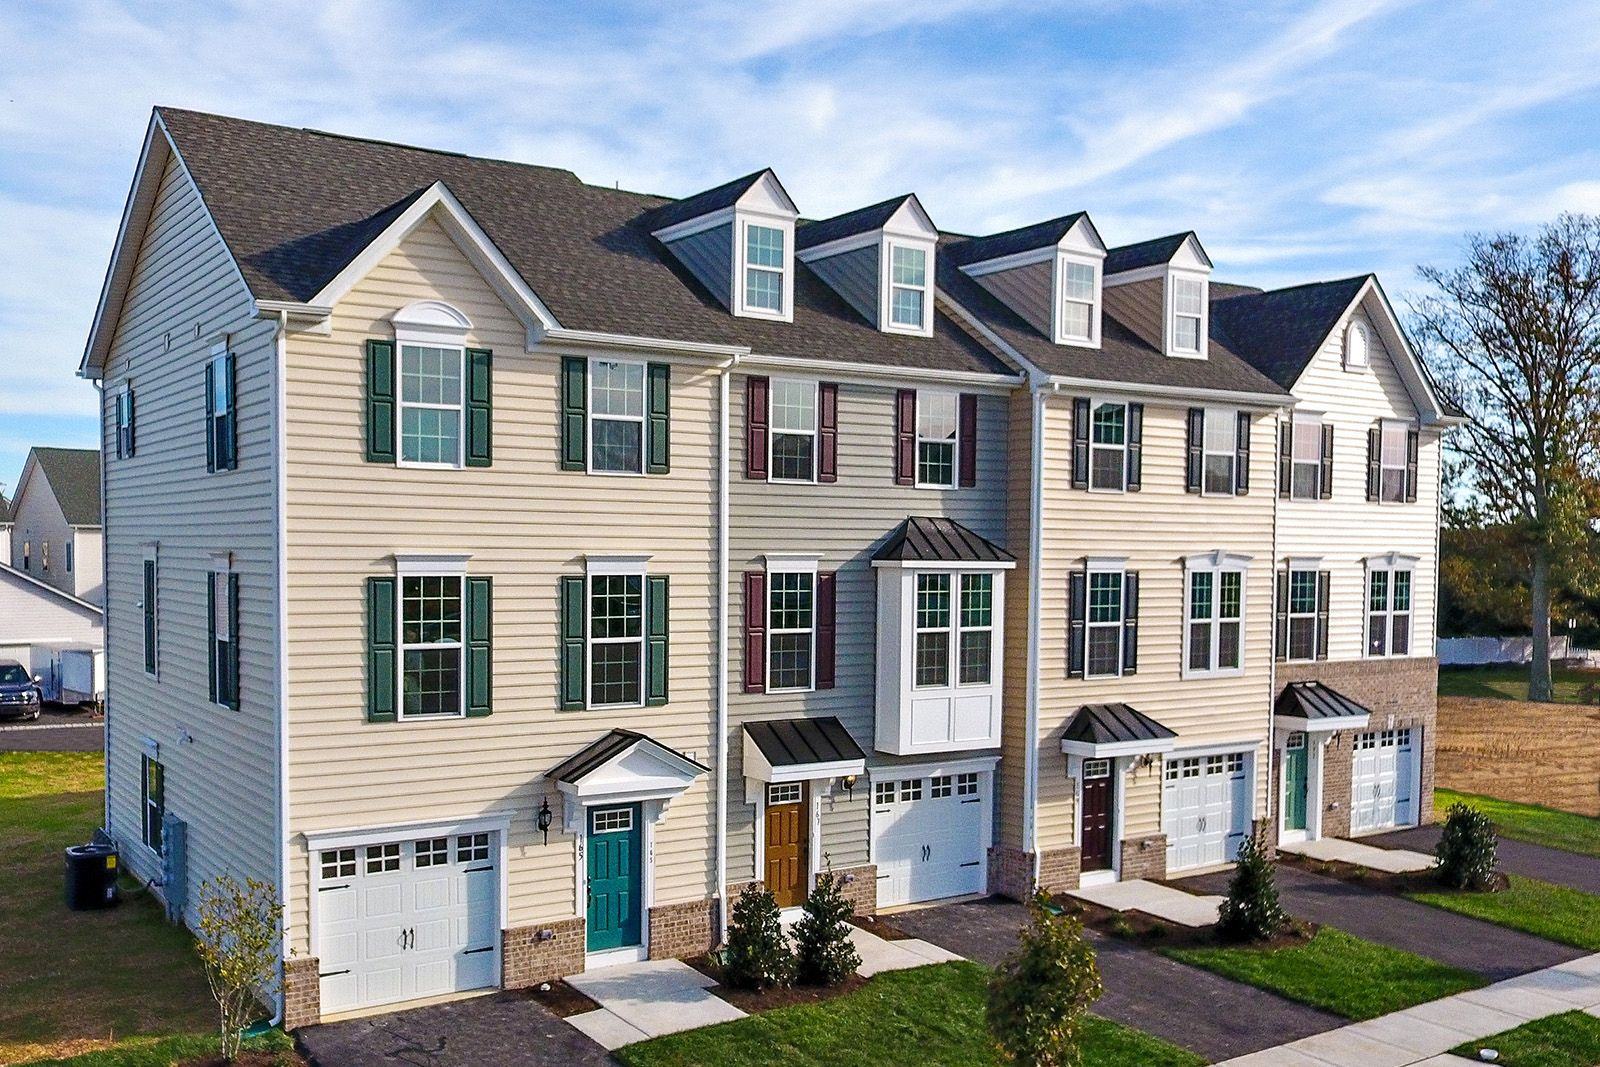 Welcome to Stonehurst in Morgantown, WV:The lowest priced new townhomes in downtown Morgantown with all appliances included and finished basements available - own for less than rent!Click hereto learn more about Stonehurst!